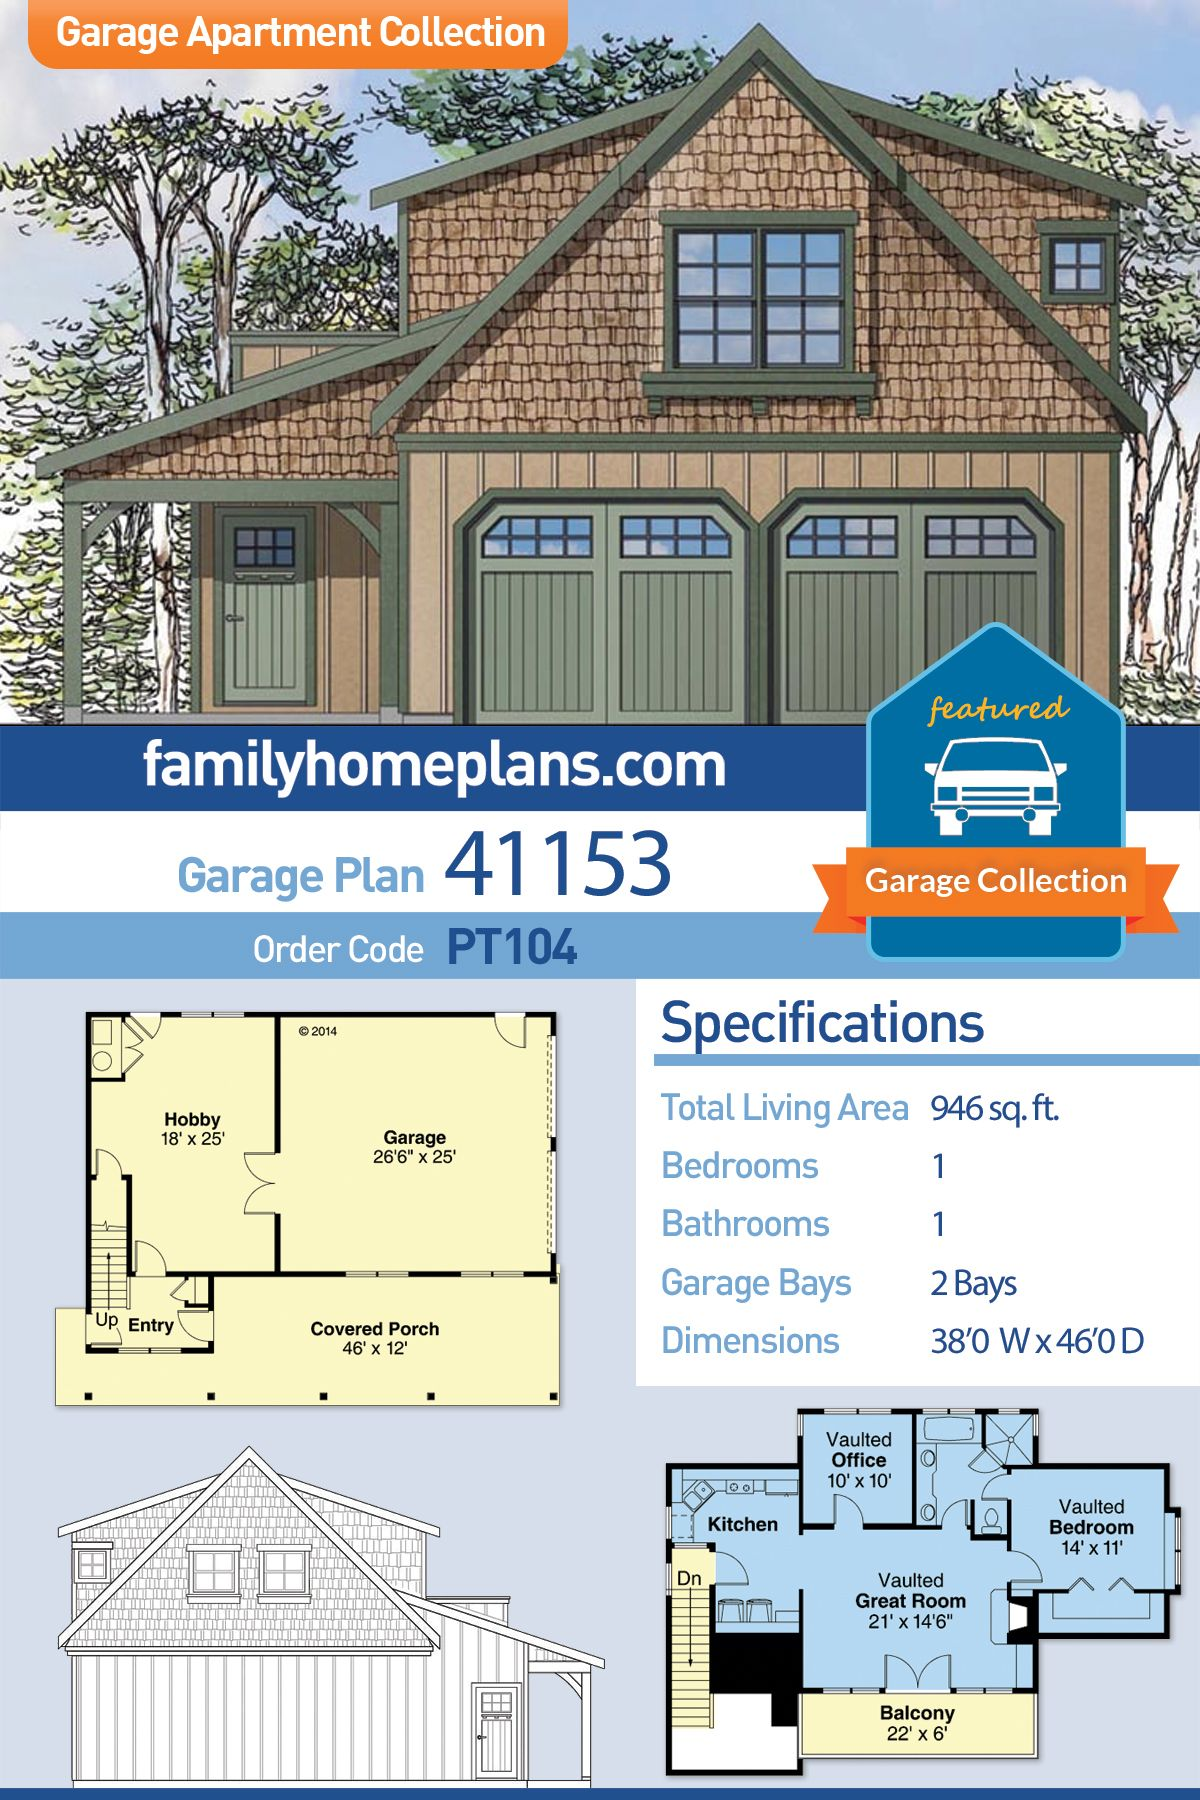 Carriage House Plan With Hobby Room Office And Balcony Garage Home Plans Collection Carriage House Plans Garage Apartments Garage Apartment Plans